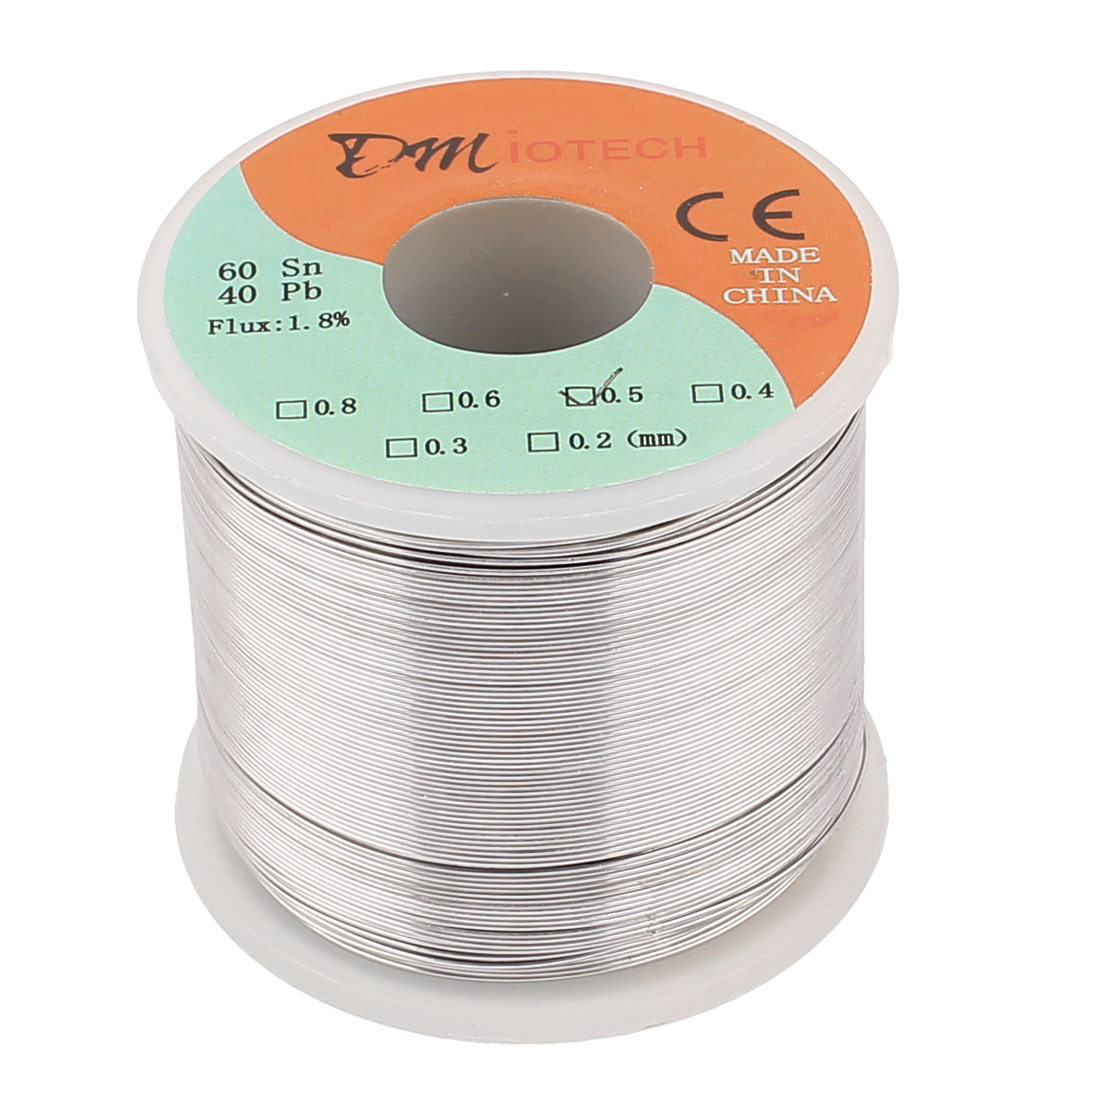 0.5mm 400G 60/40 Rosin Core Tin Lead Roll Soldering Solder Wire